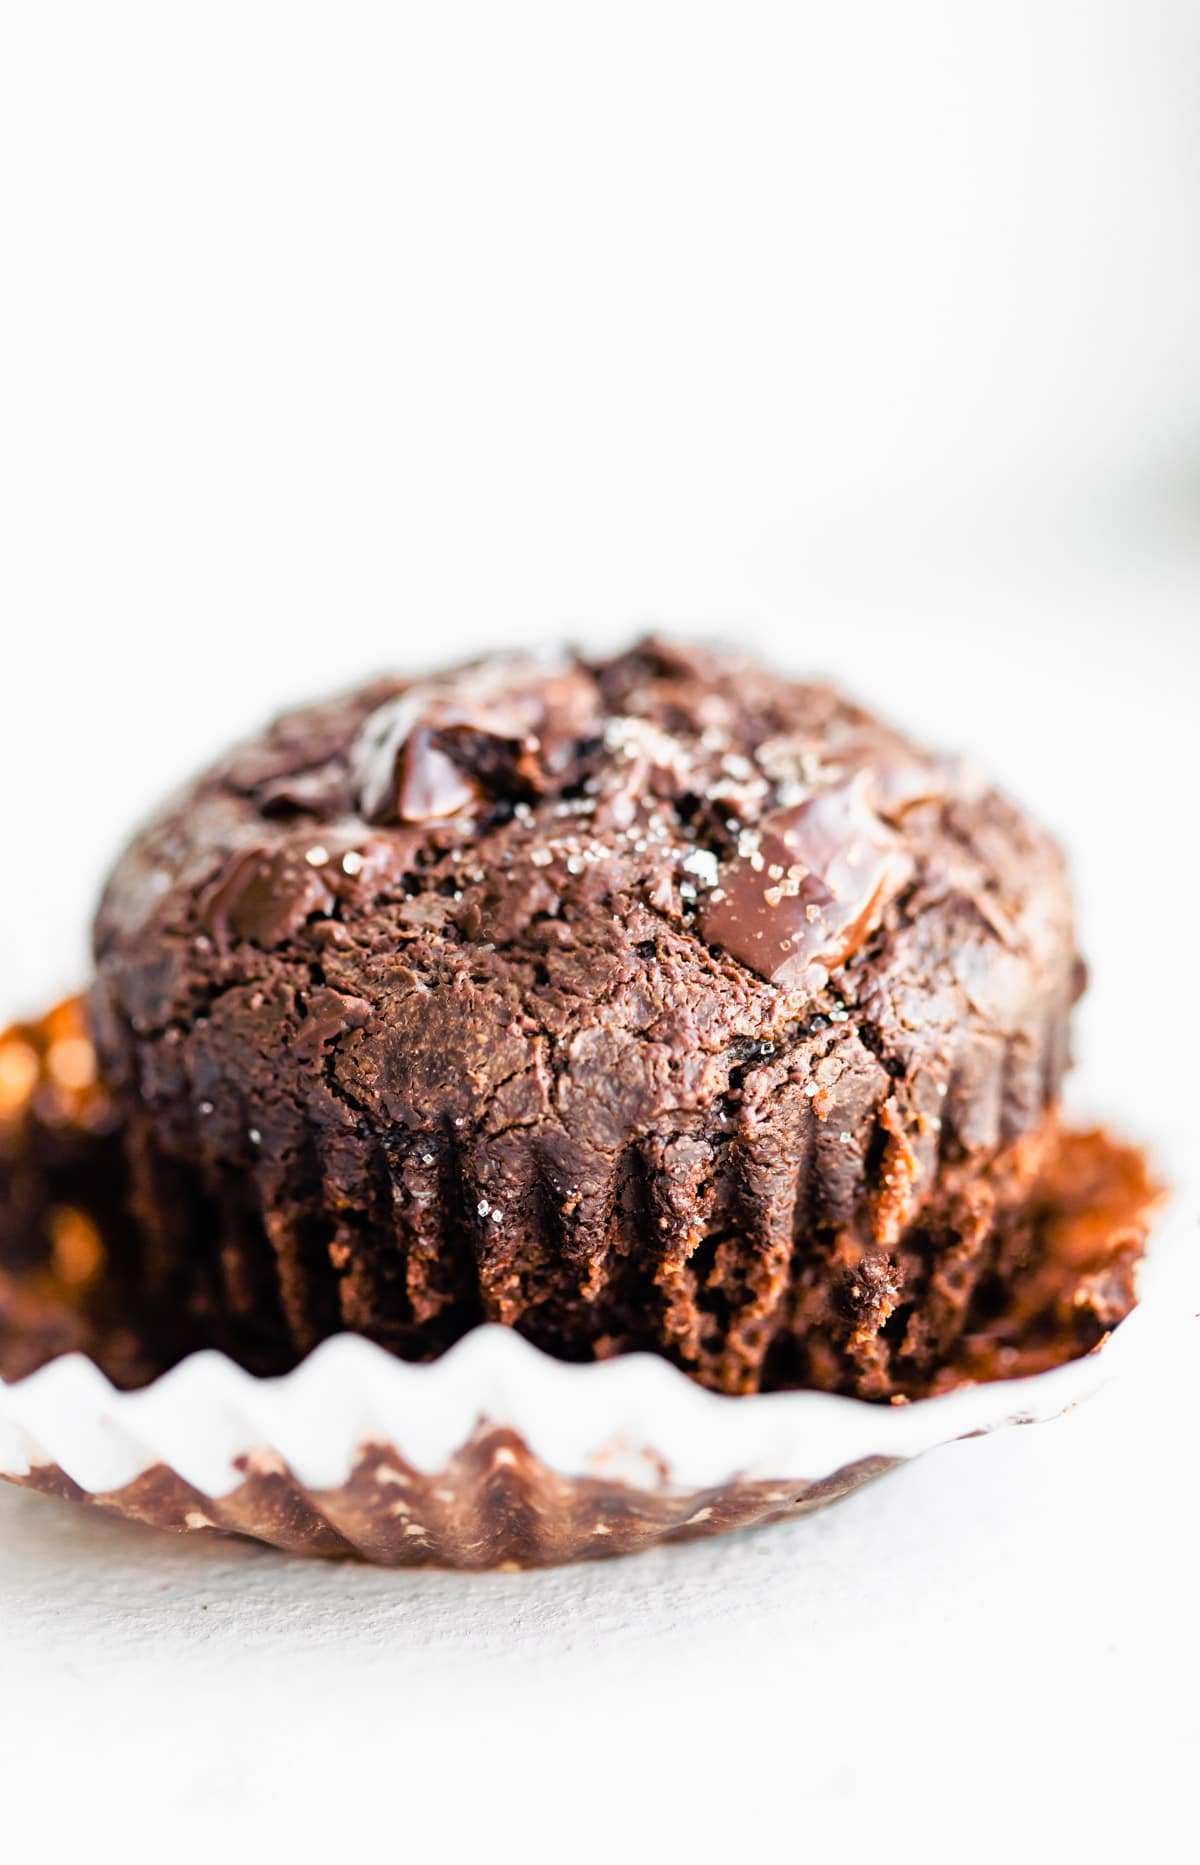 one fluffy gluten free chocolate muffin topped with sea salt on white paper cupcake liner